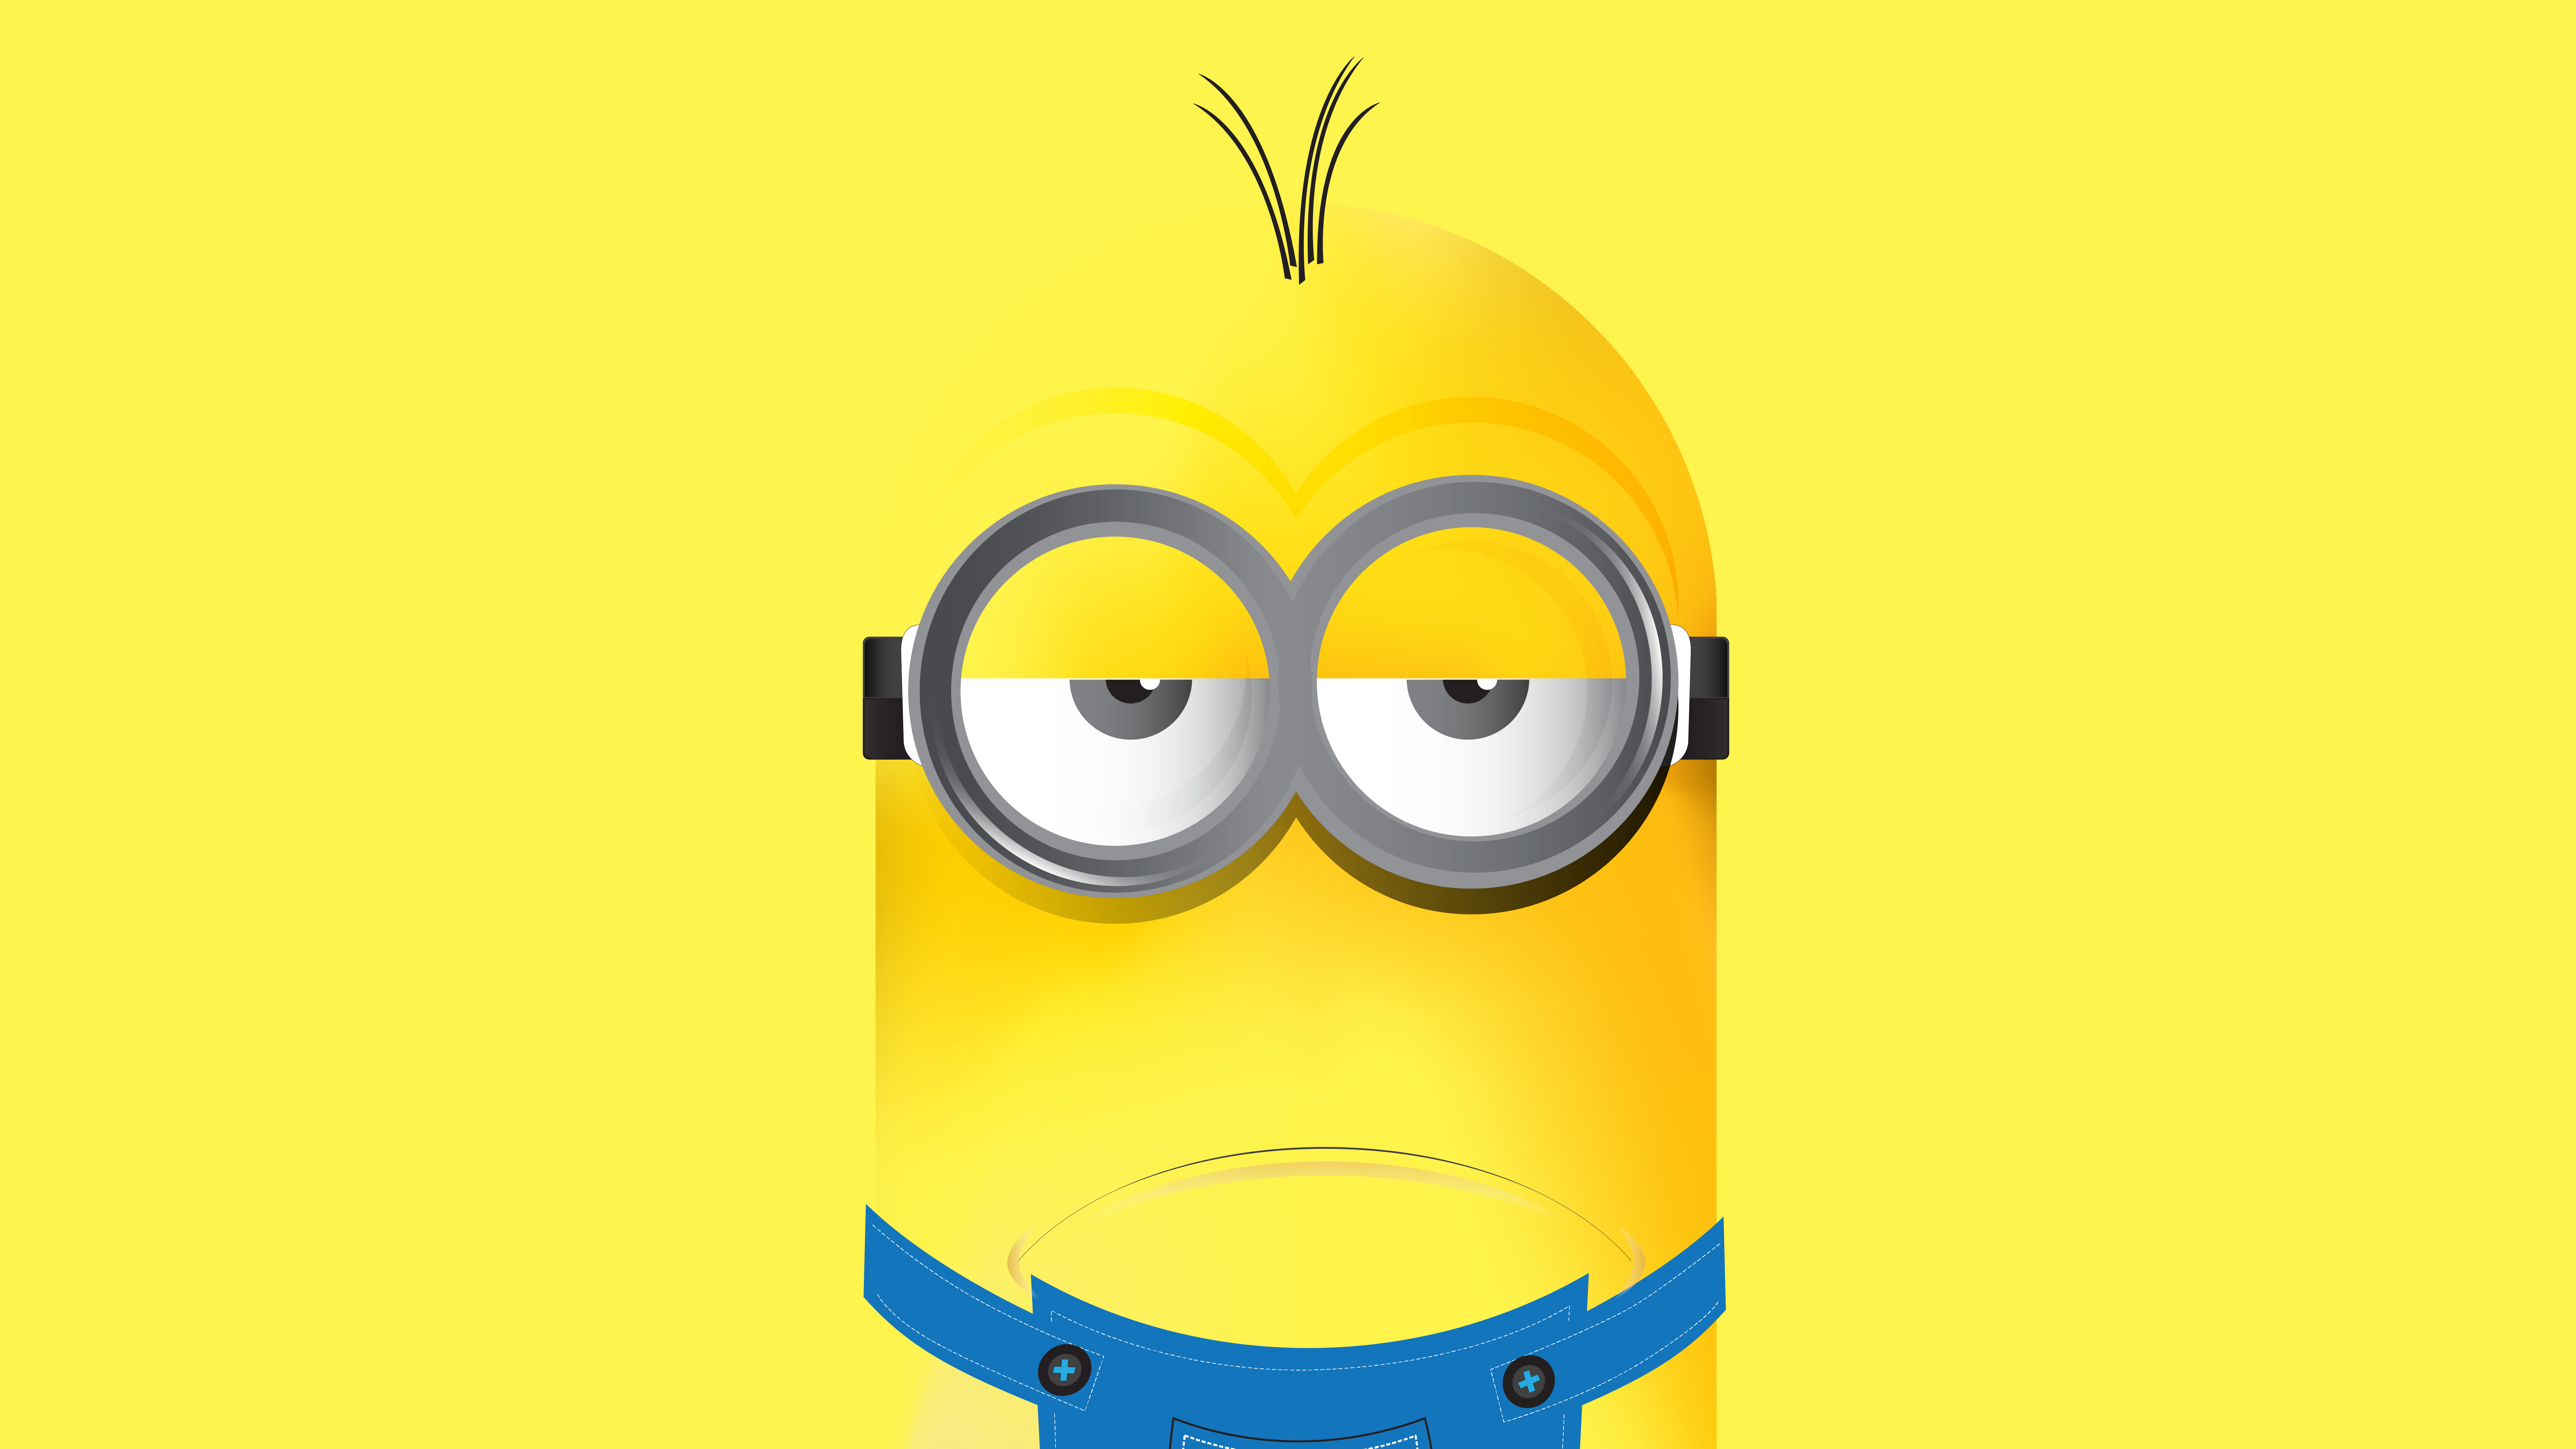 Pin by Andrs Lasso on vectores in 2019 Minions Background hd 8000x4500